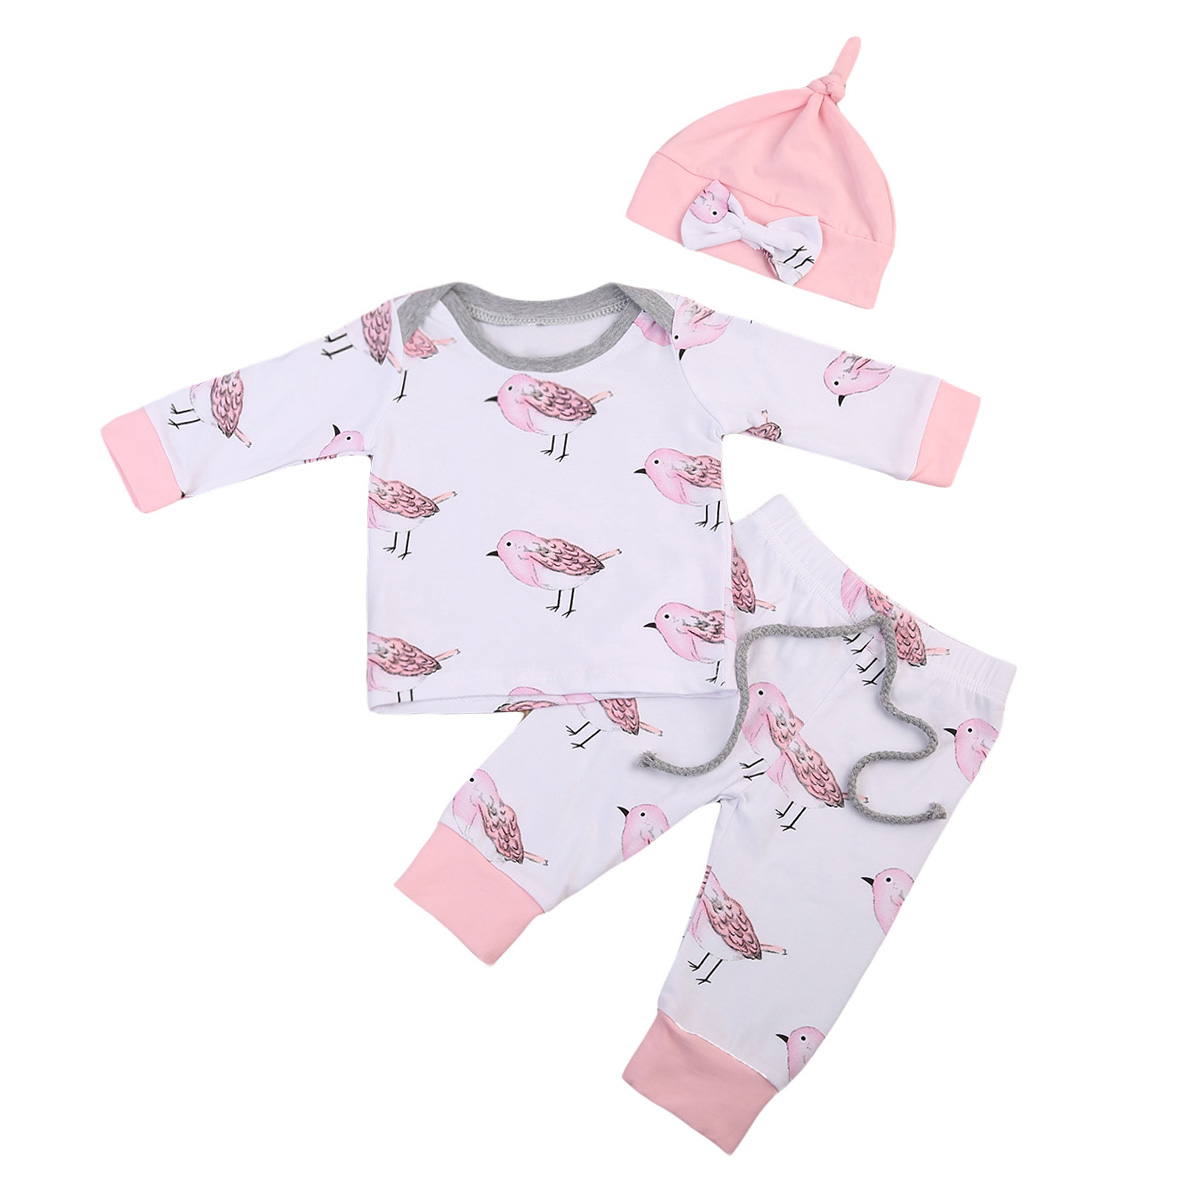 Newborn Baby Girls Clothes Sets Cotton Tops Long Sleeve Pants Hat 3PCS Cotton Outfits Set Clothing Baby Girl 0-24M girls tops cute pants outfit clothes newborn kids baby girl clothing sets summer off shoulder striped short sleeve 1 6t